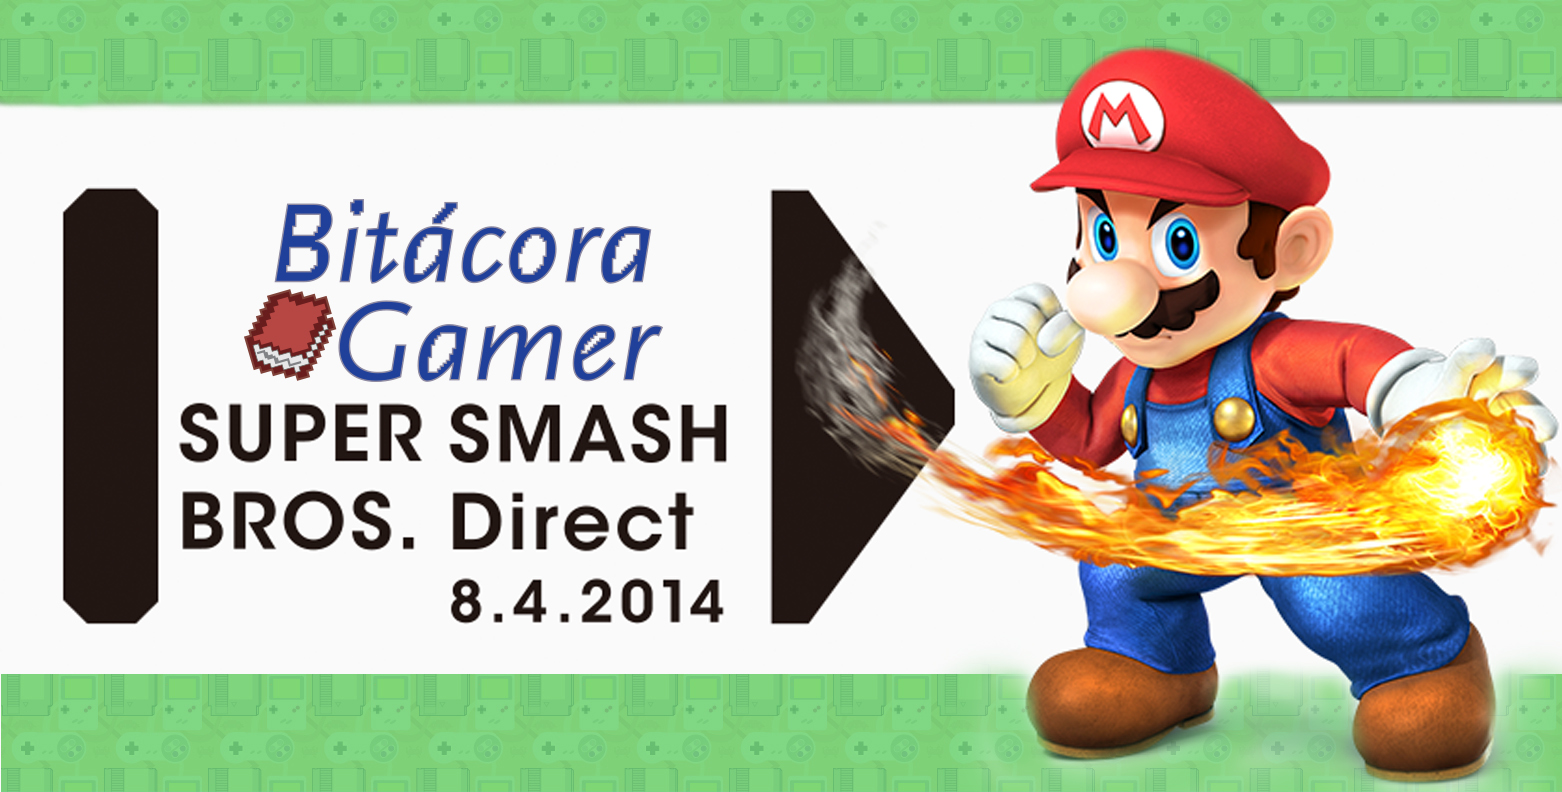 Super Smash Bros Direct